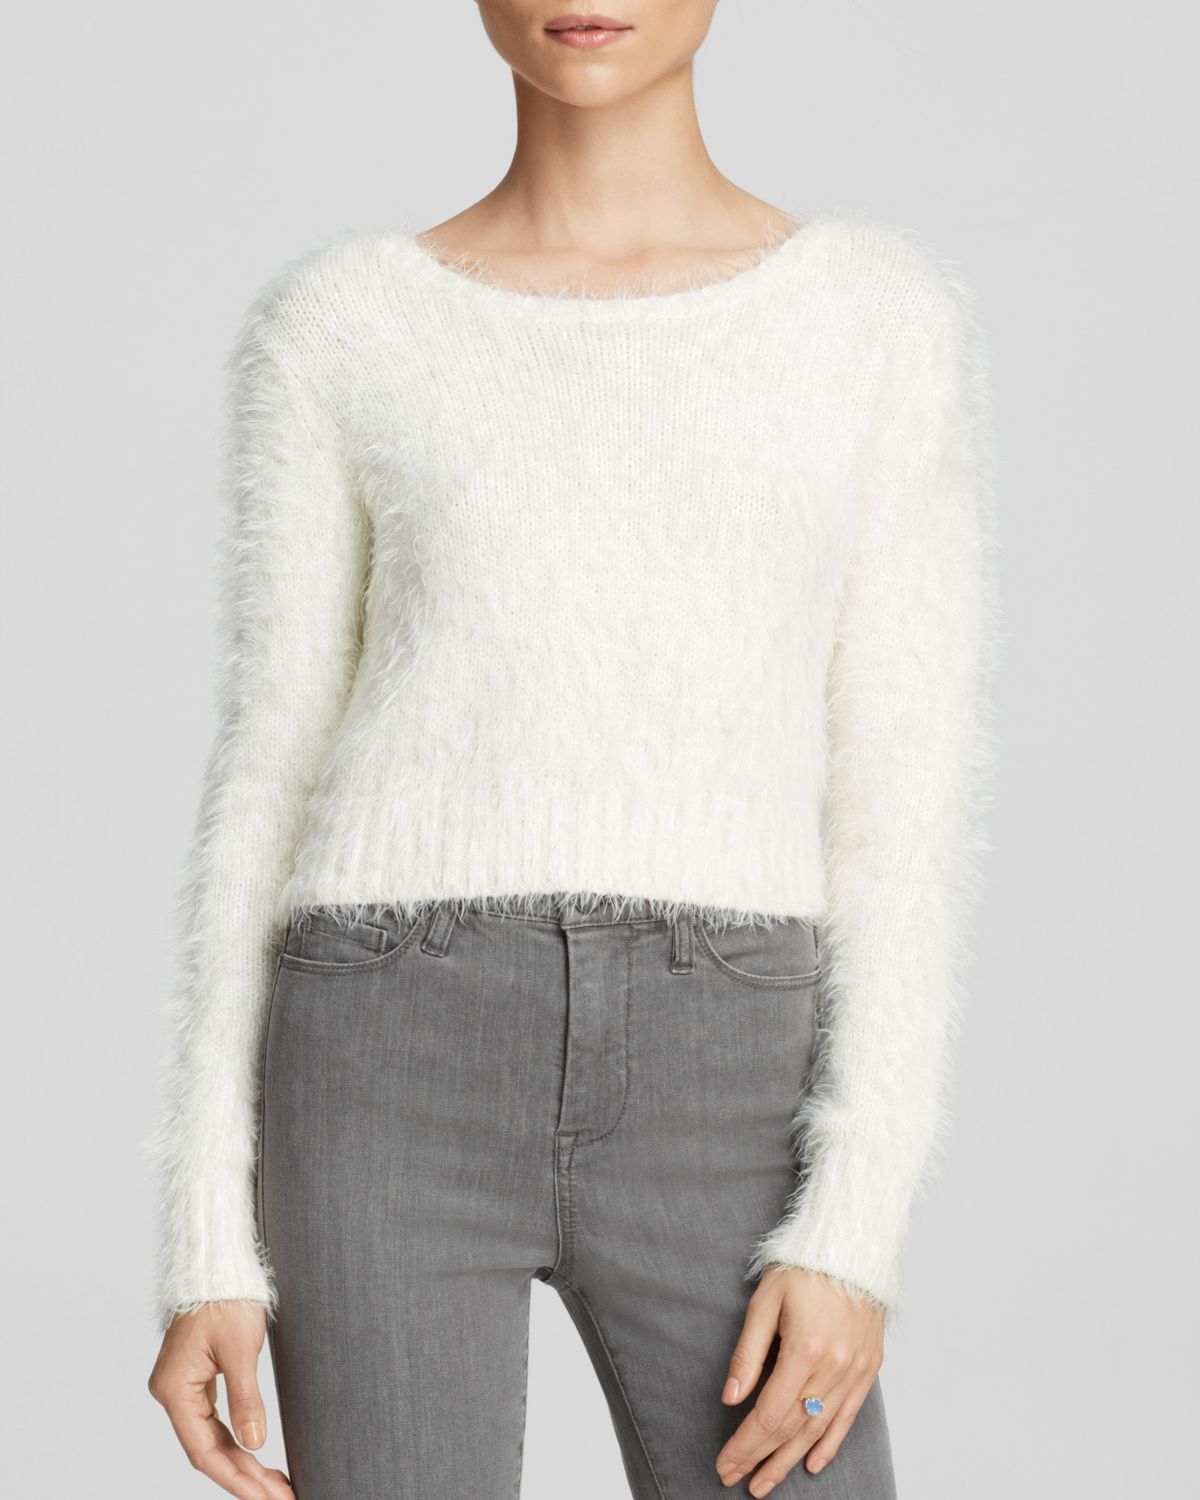 Target Womens Sweaters